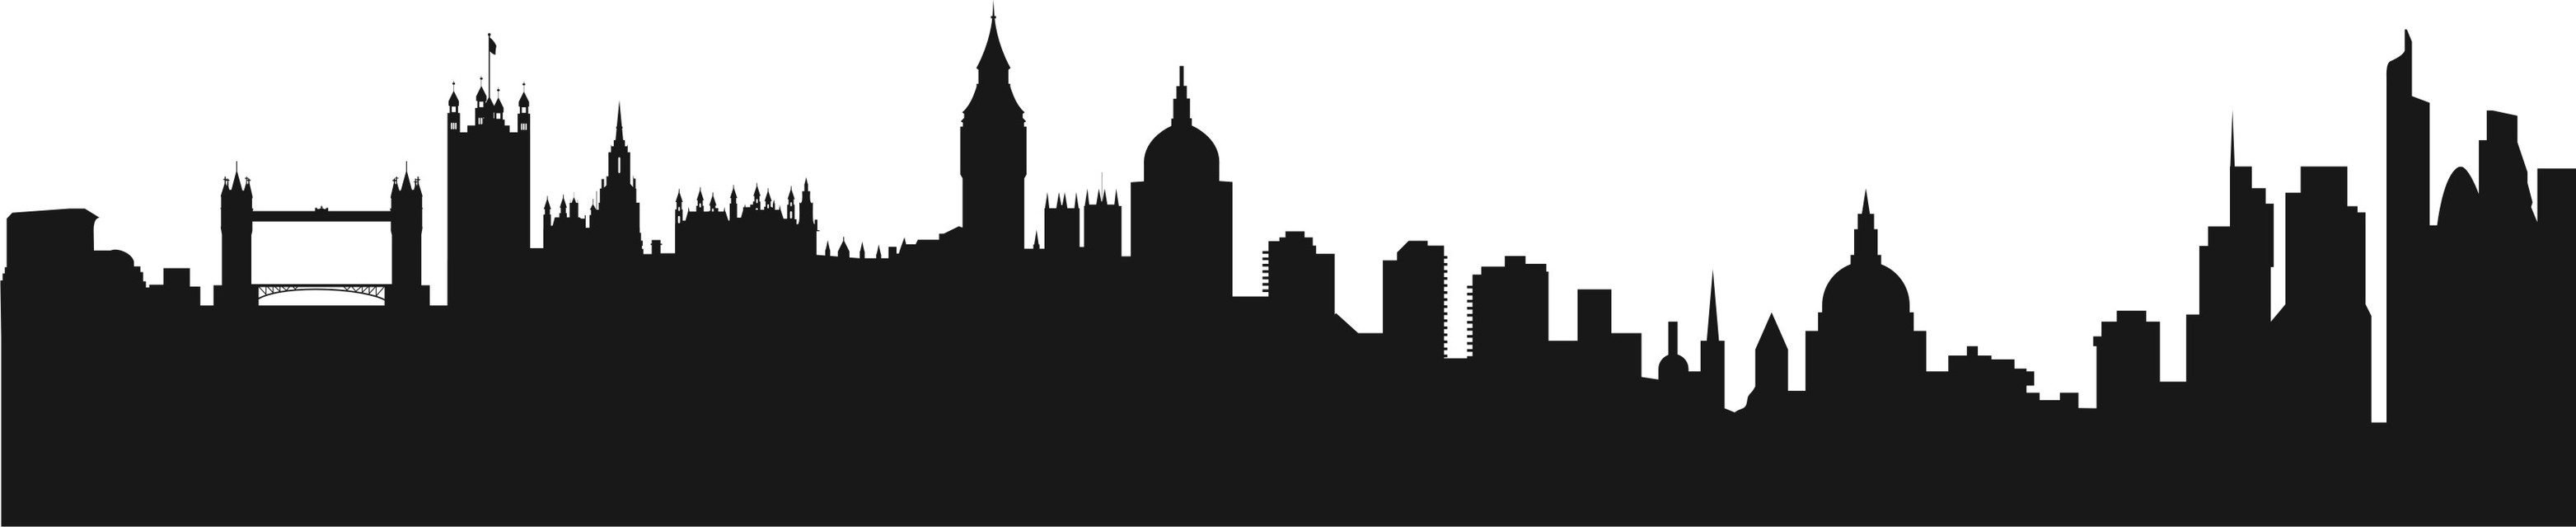 London City Clipart For Walls.